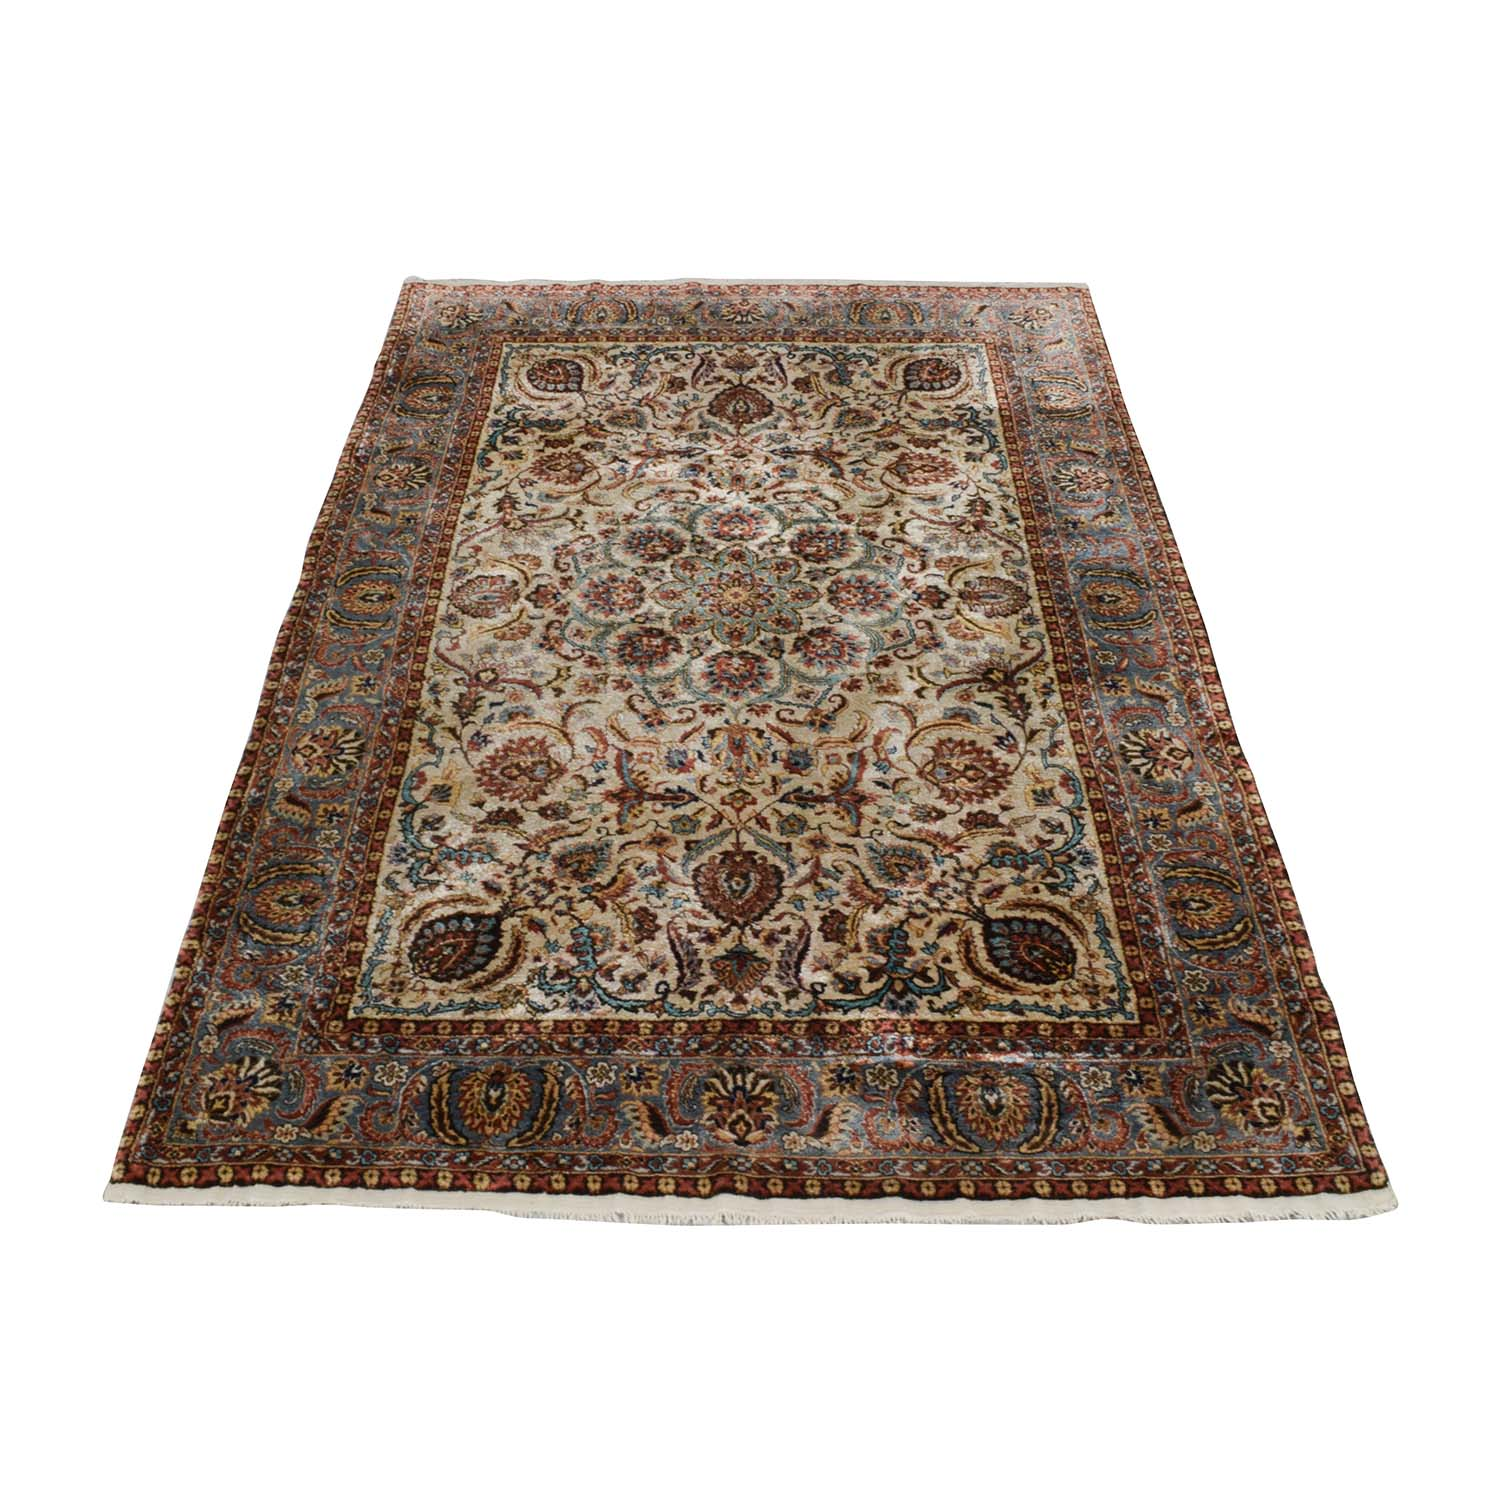 Persian Rug in Multi Colors on sale